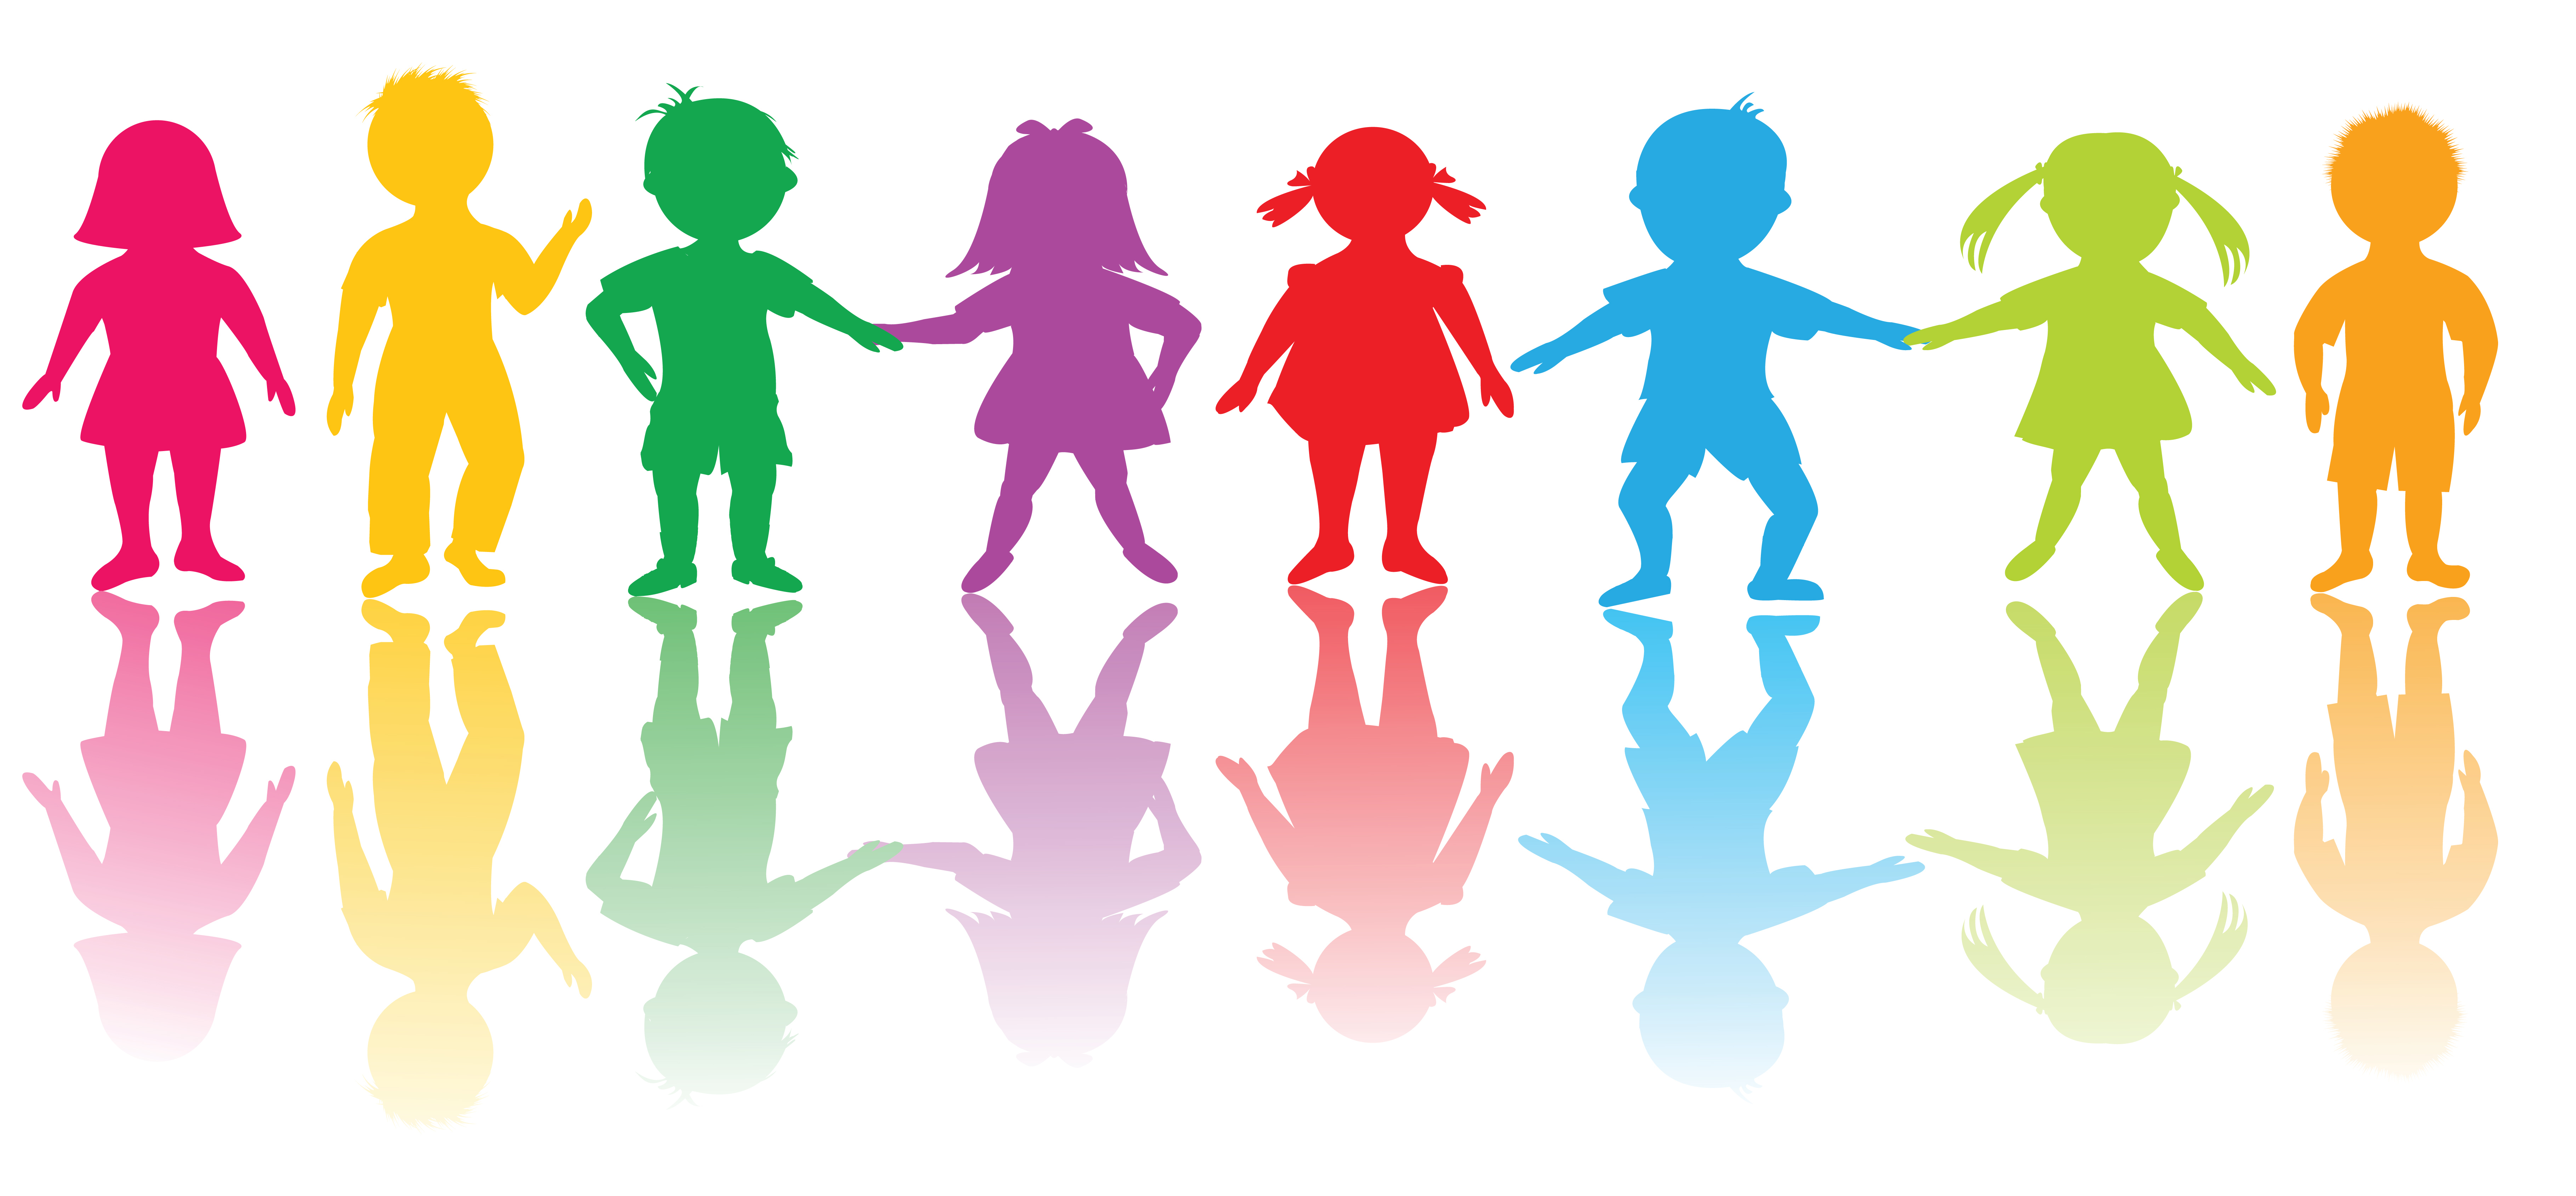 Therapy clipart group counseling. Pathways to play step